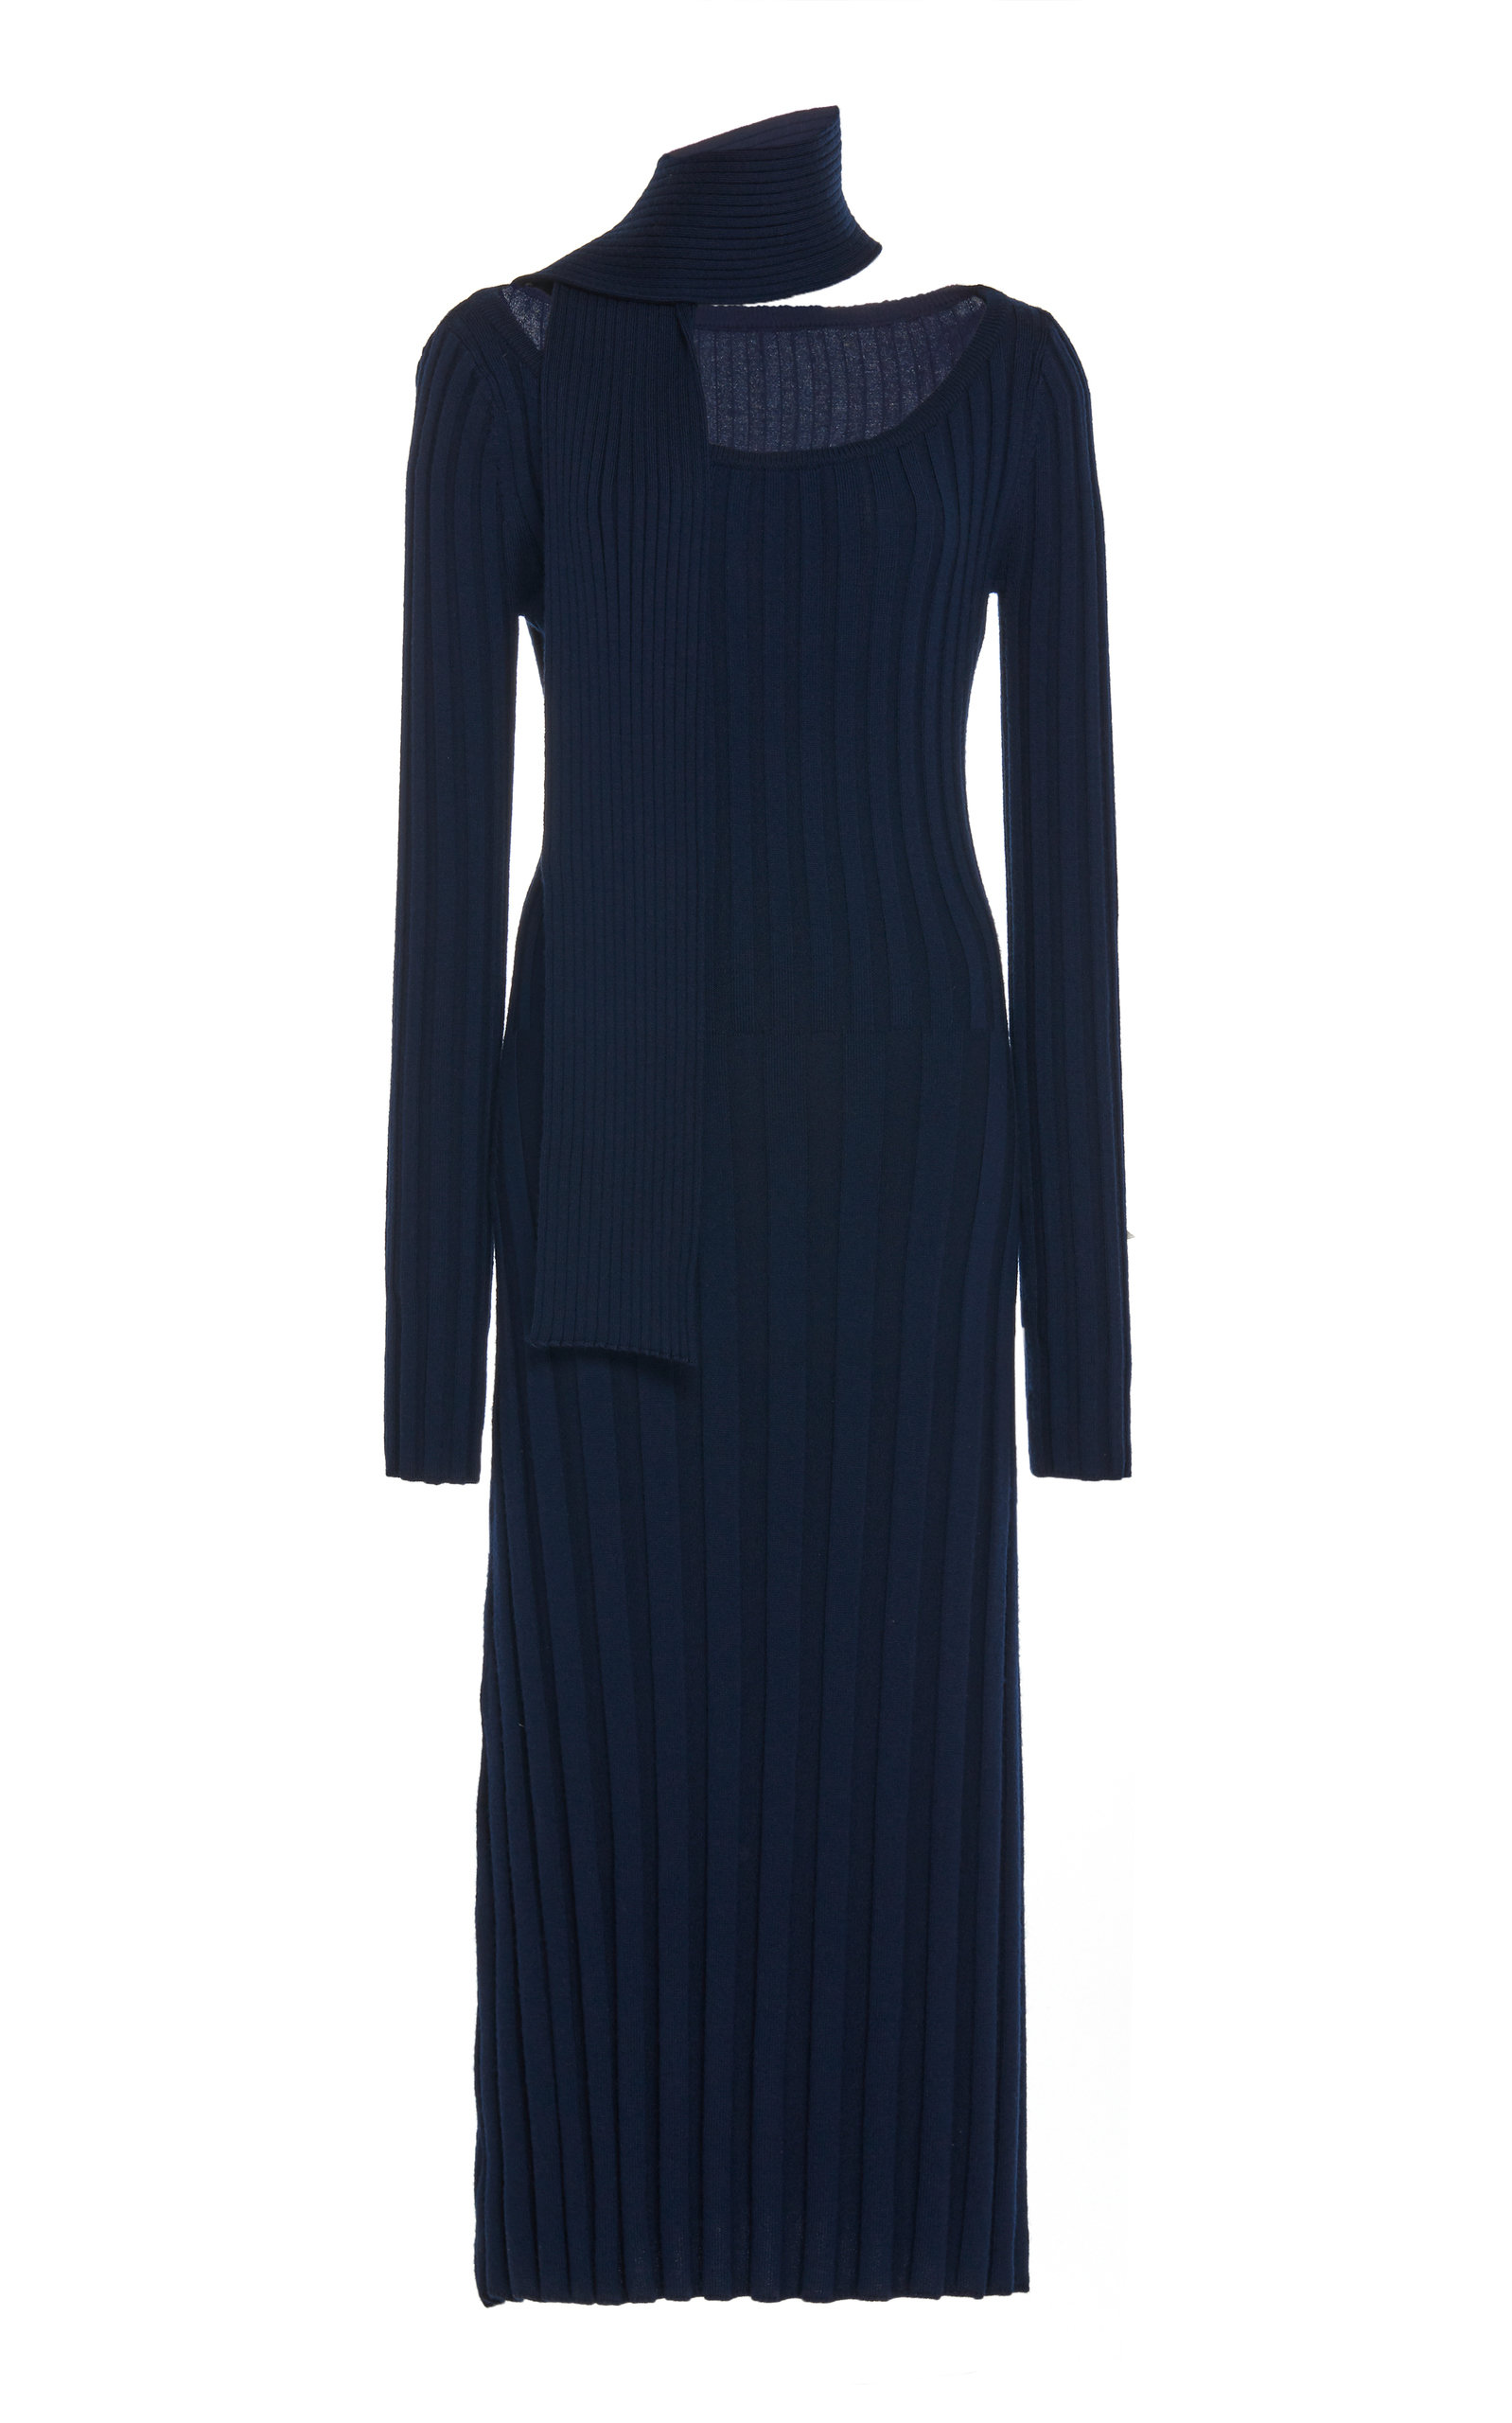 Buy Rokh Ribbed Wool-Knit Dress online, shop Rokh at the best price